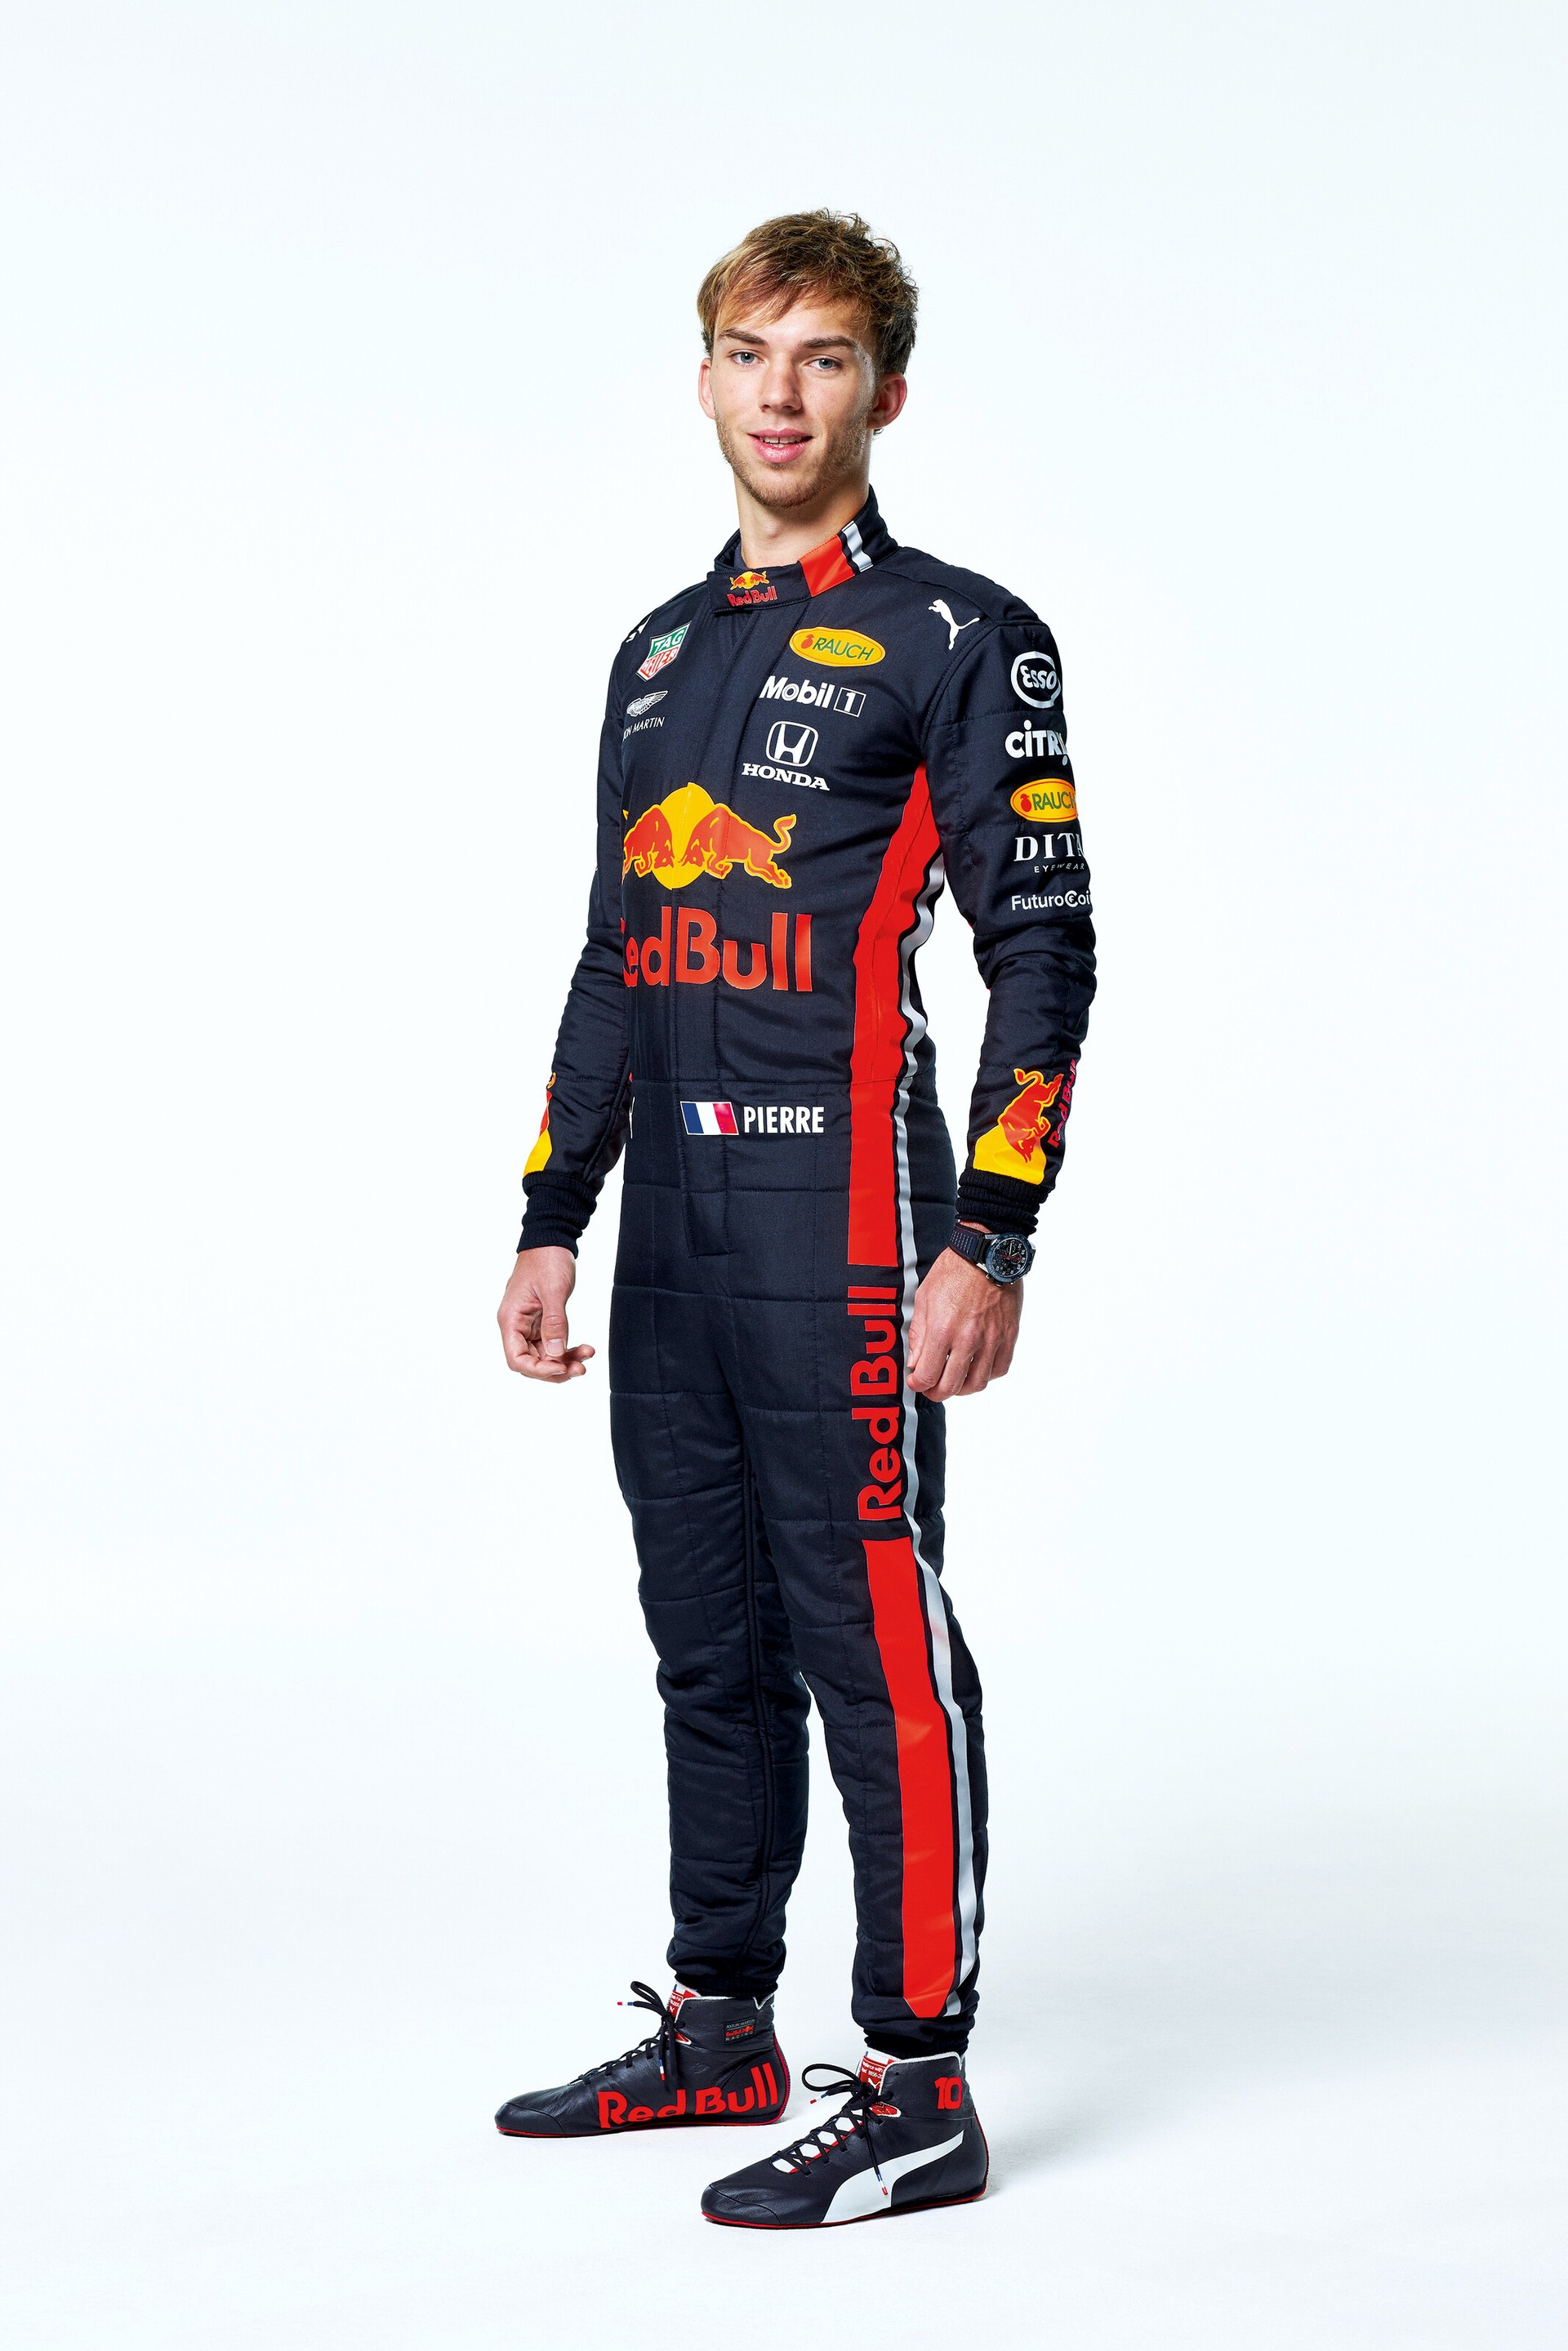 Pierre Gasly seen during the Red Bull Racing 2019 Studio Shoot, February 2019, United Kingdom // Dustin Snipes/Red Bull Content Pool // AP-1YFPFH9E51W11 // Usage for editorial use only // Please go to www.redbullcontentpool.com for further information. //